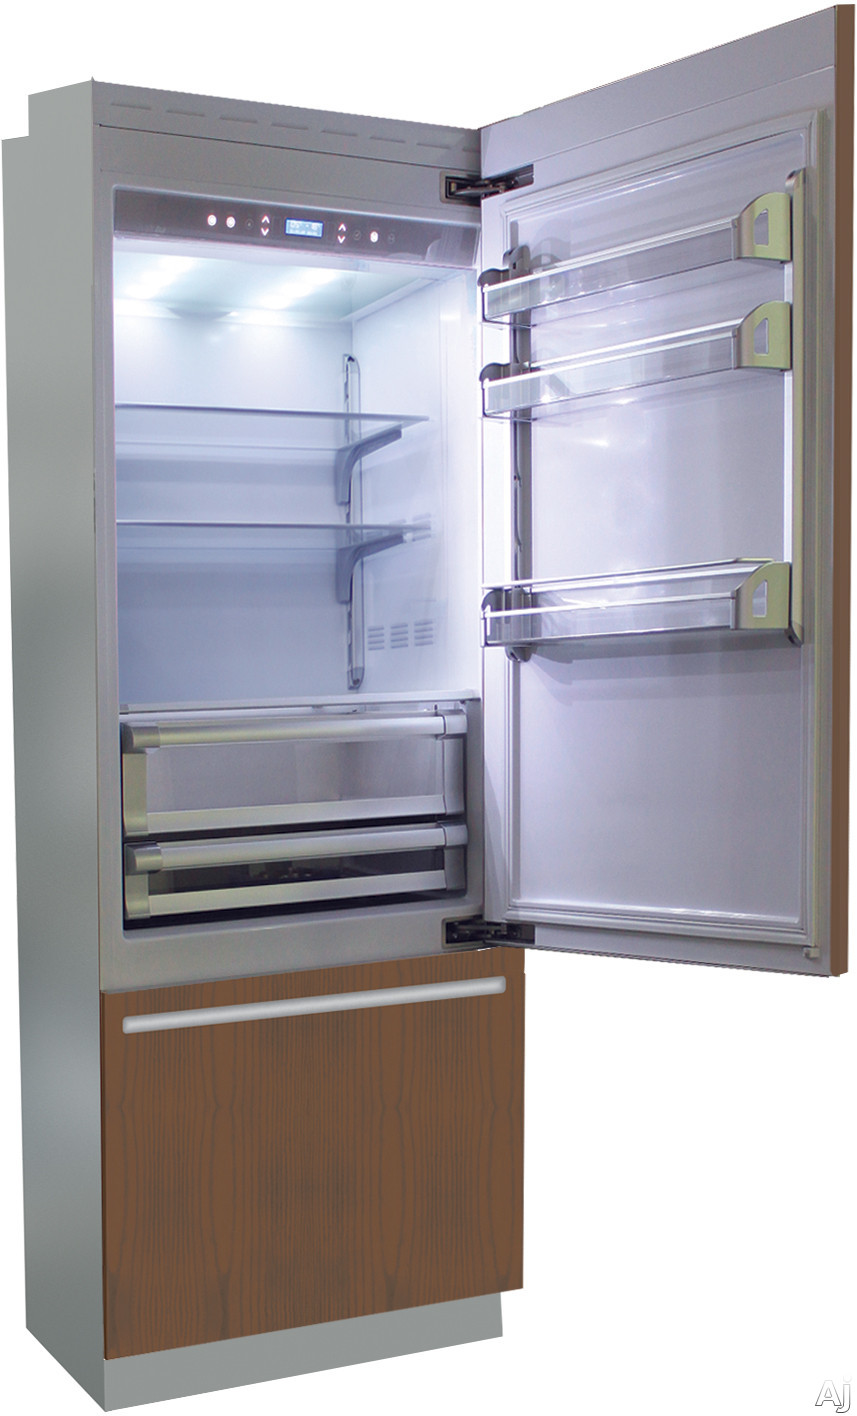 Fhiaba Brilliance Series BI30BIRO 30 Inch Panel Ready Built-In Bottom Freezer Refrigerator with TriMode Drawer, Frost-Free Operation, Soft Closing System, LED Lighting, Bottle Cooler and Ice Maker: Ri